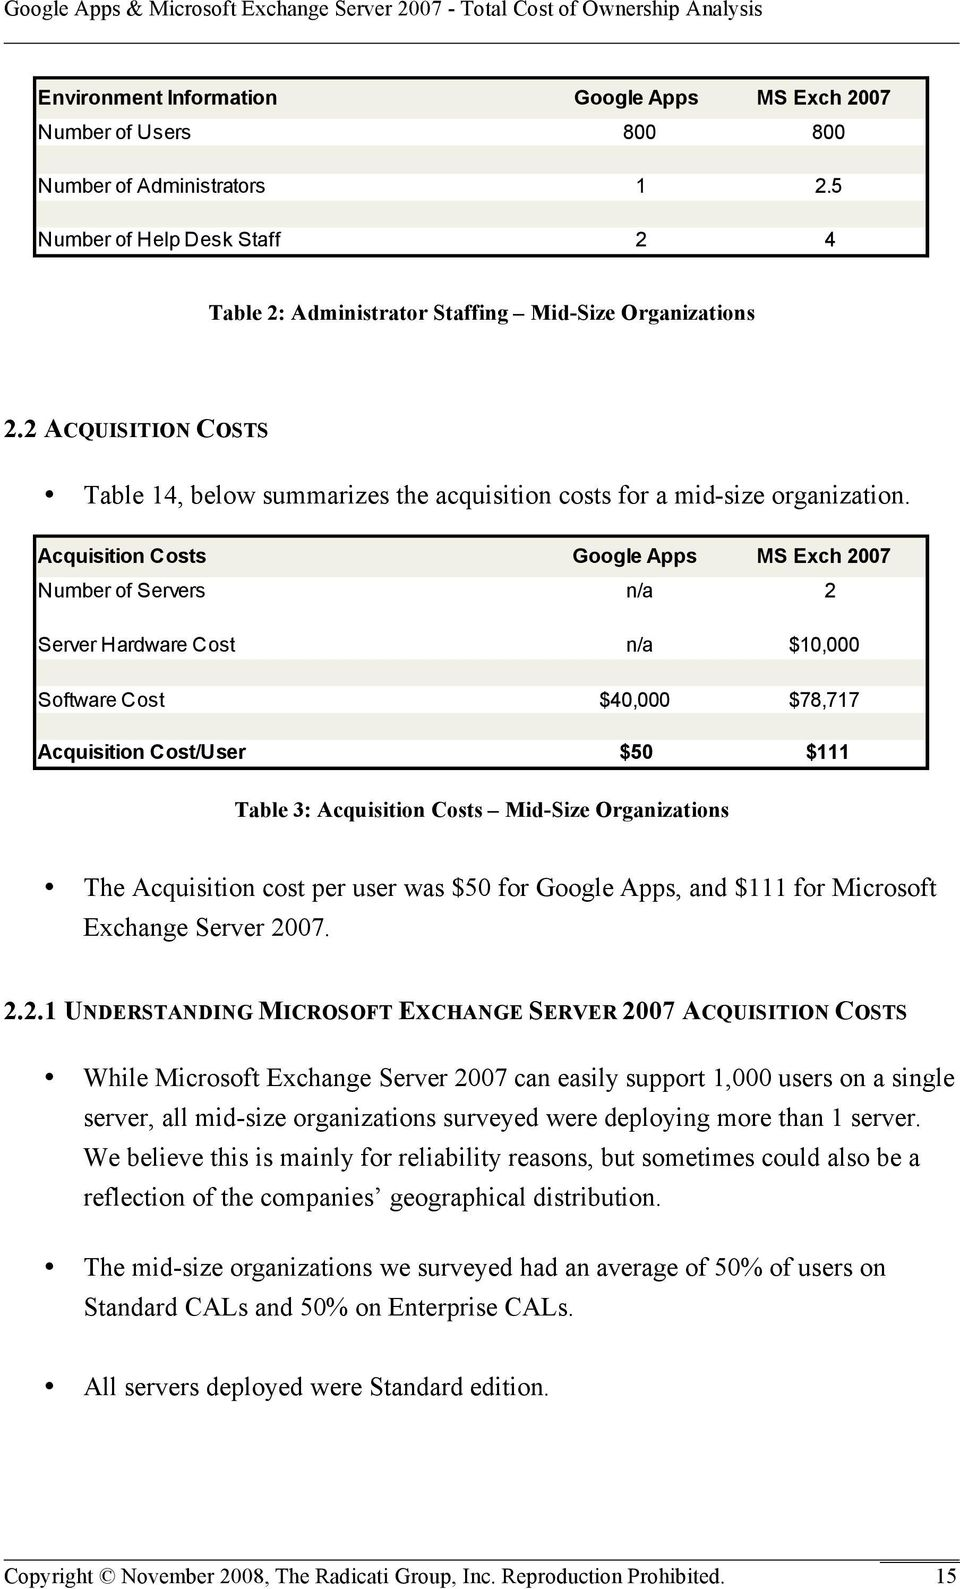 Acquisition Costs Google Apps MS Exch 2007 Number of Servers n/a 2 Server Hardware Cost n/a $10,000 Software Cost $40,000 $78,717 Acquisition Cost/User $50 $111 Table 3: Acquisition Costs Mid-Size